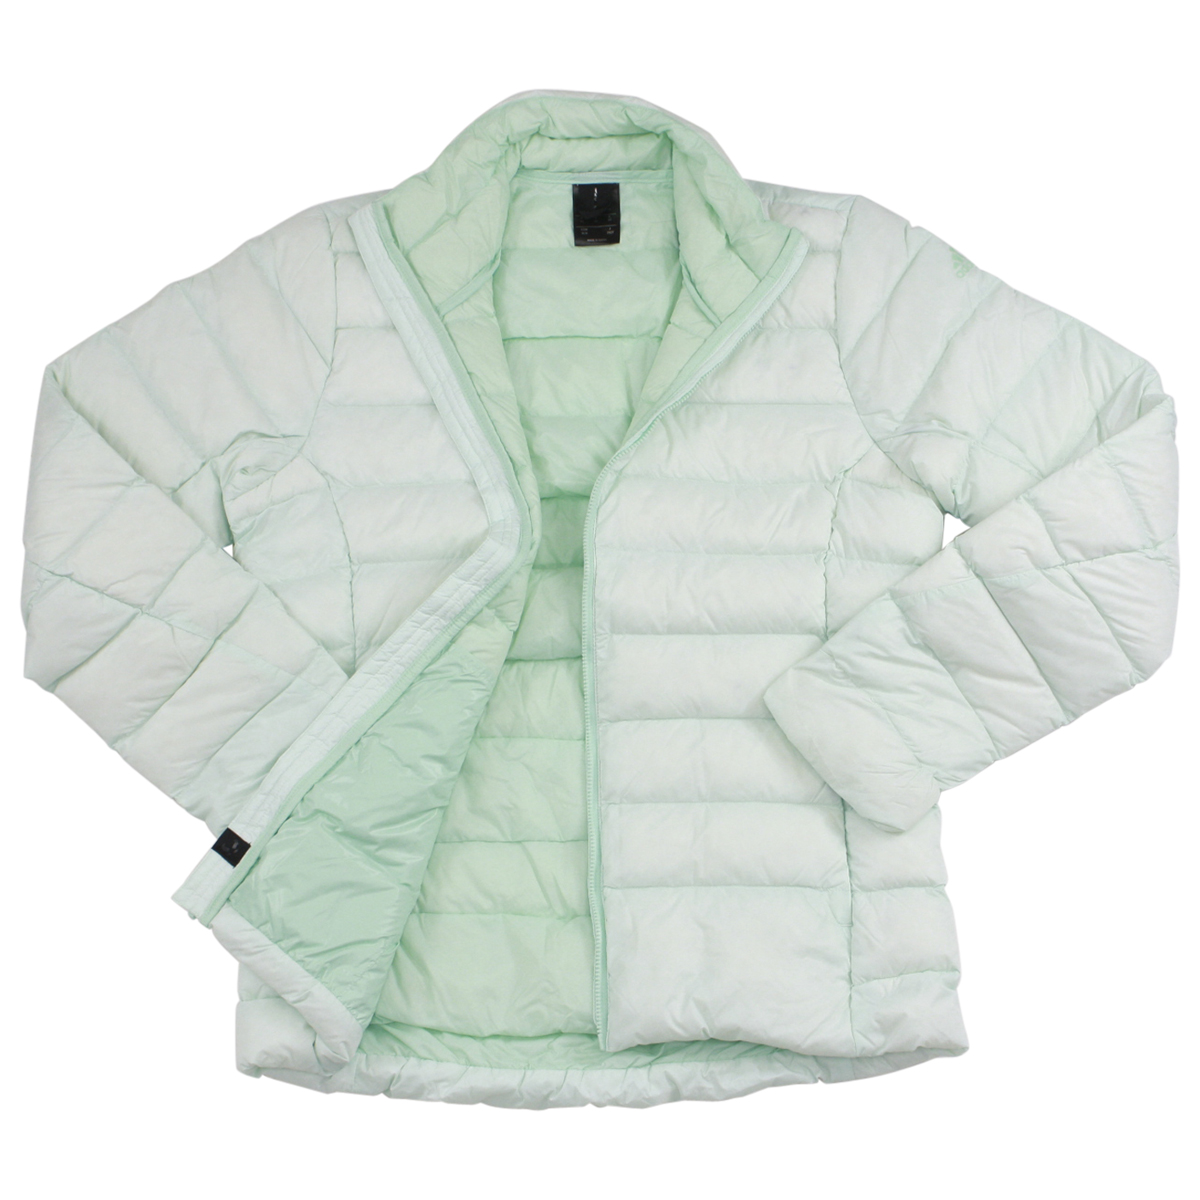 4eb8e29575a2 Adidas Women s Light Down Winter Jacket